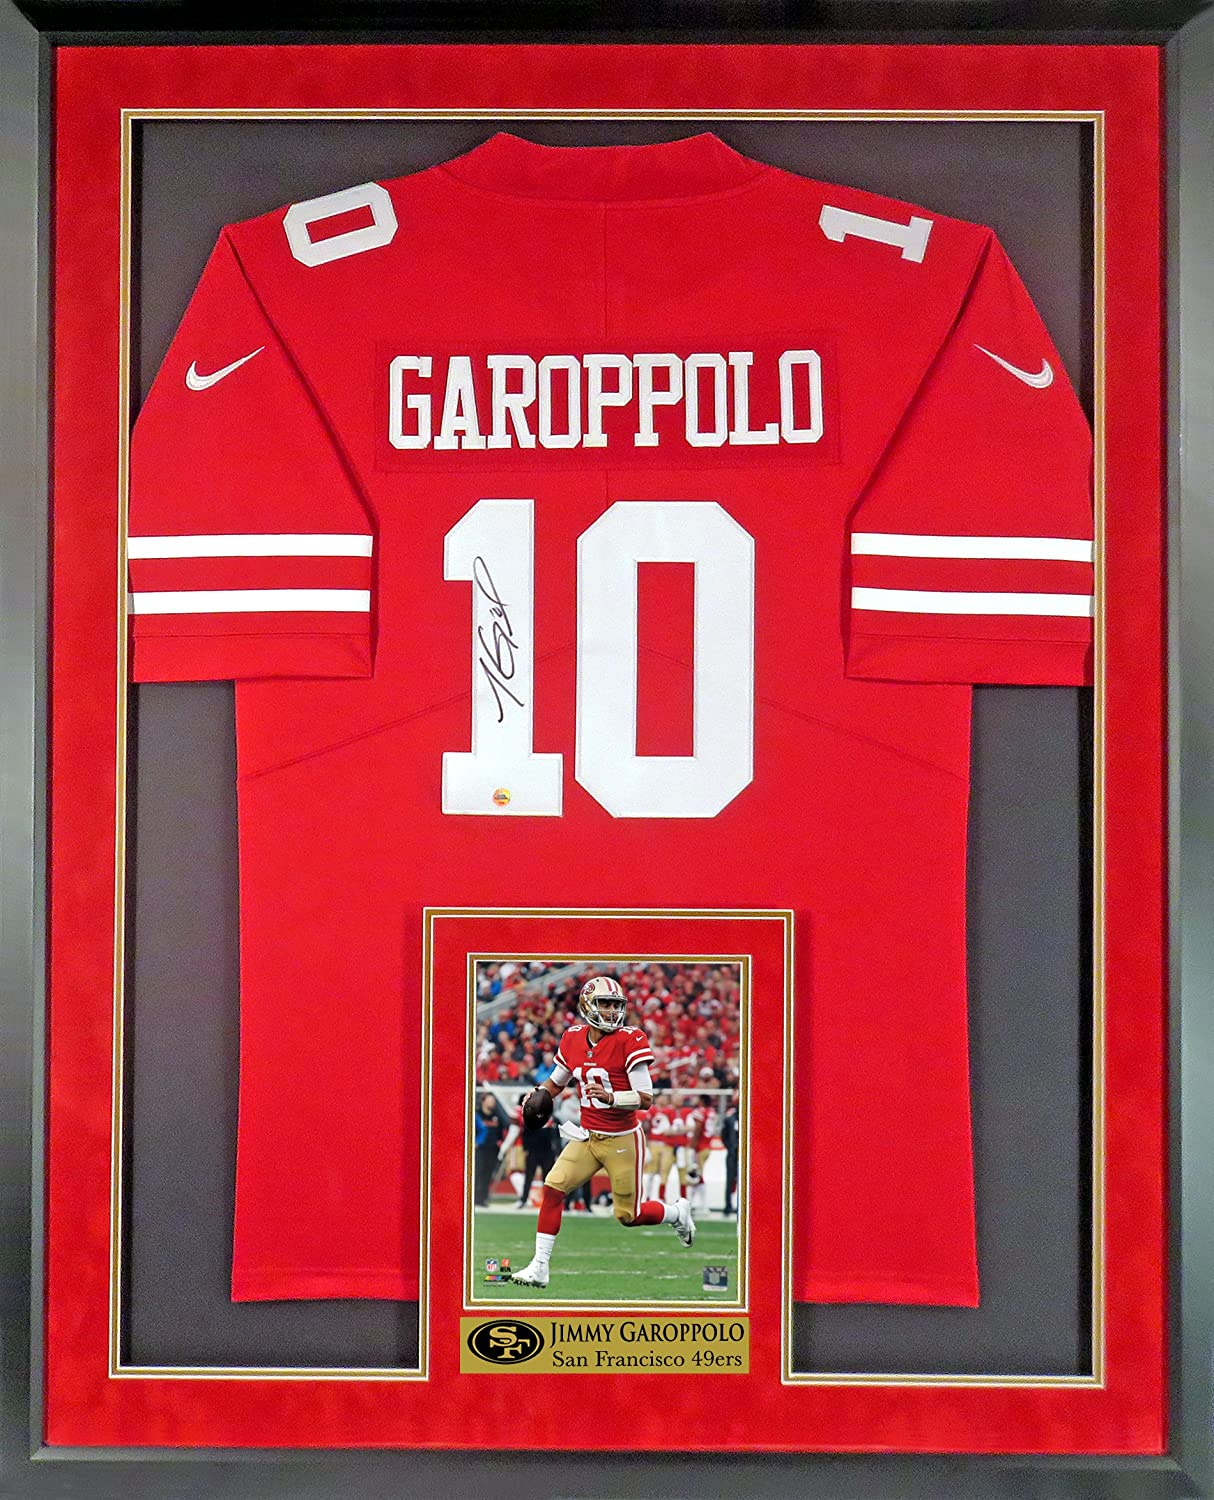 240120d6fac Amazon.com: SF 49ers Jimmy Garoppolo Autographed Jersey (w/ Inset Photo & Custom  49ers Plate) Framed: Sports Collectibles